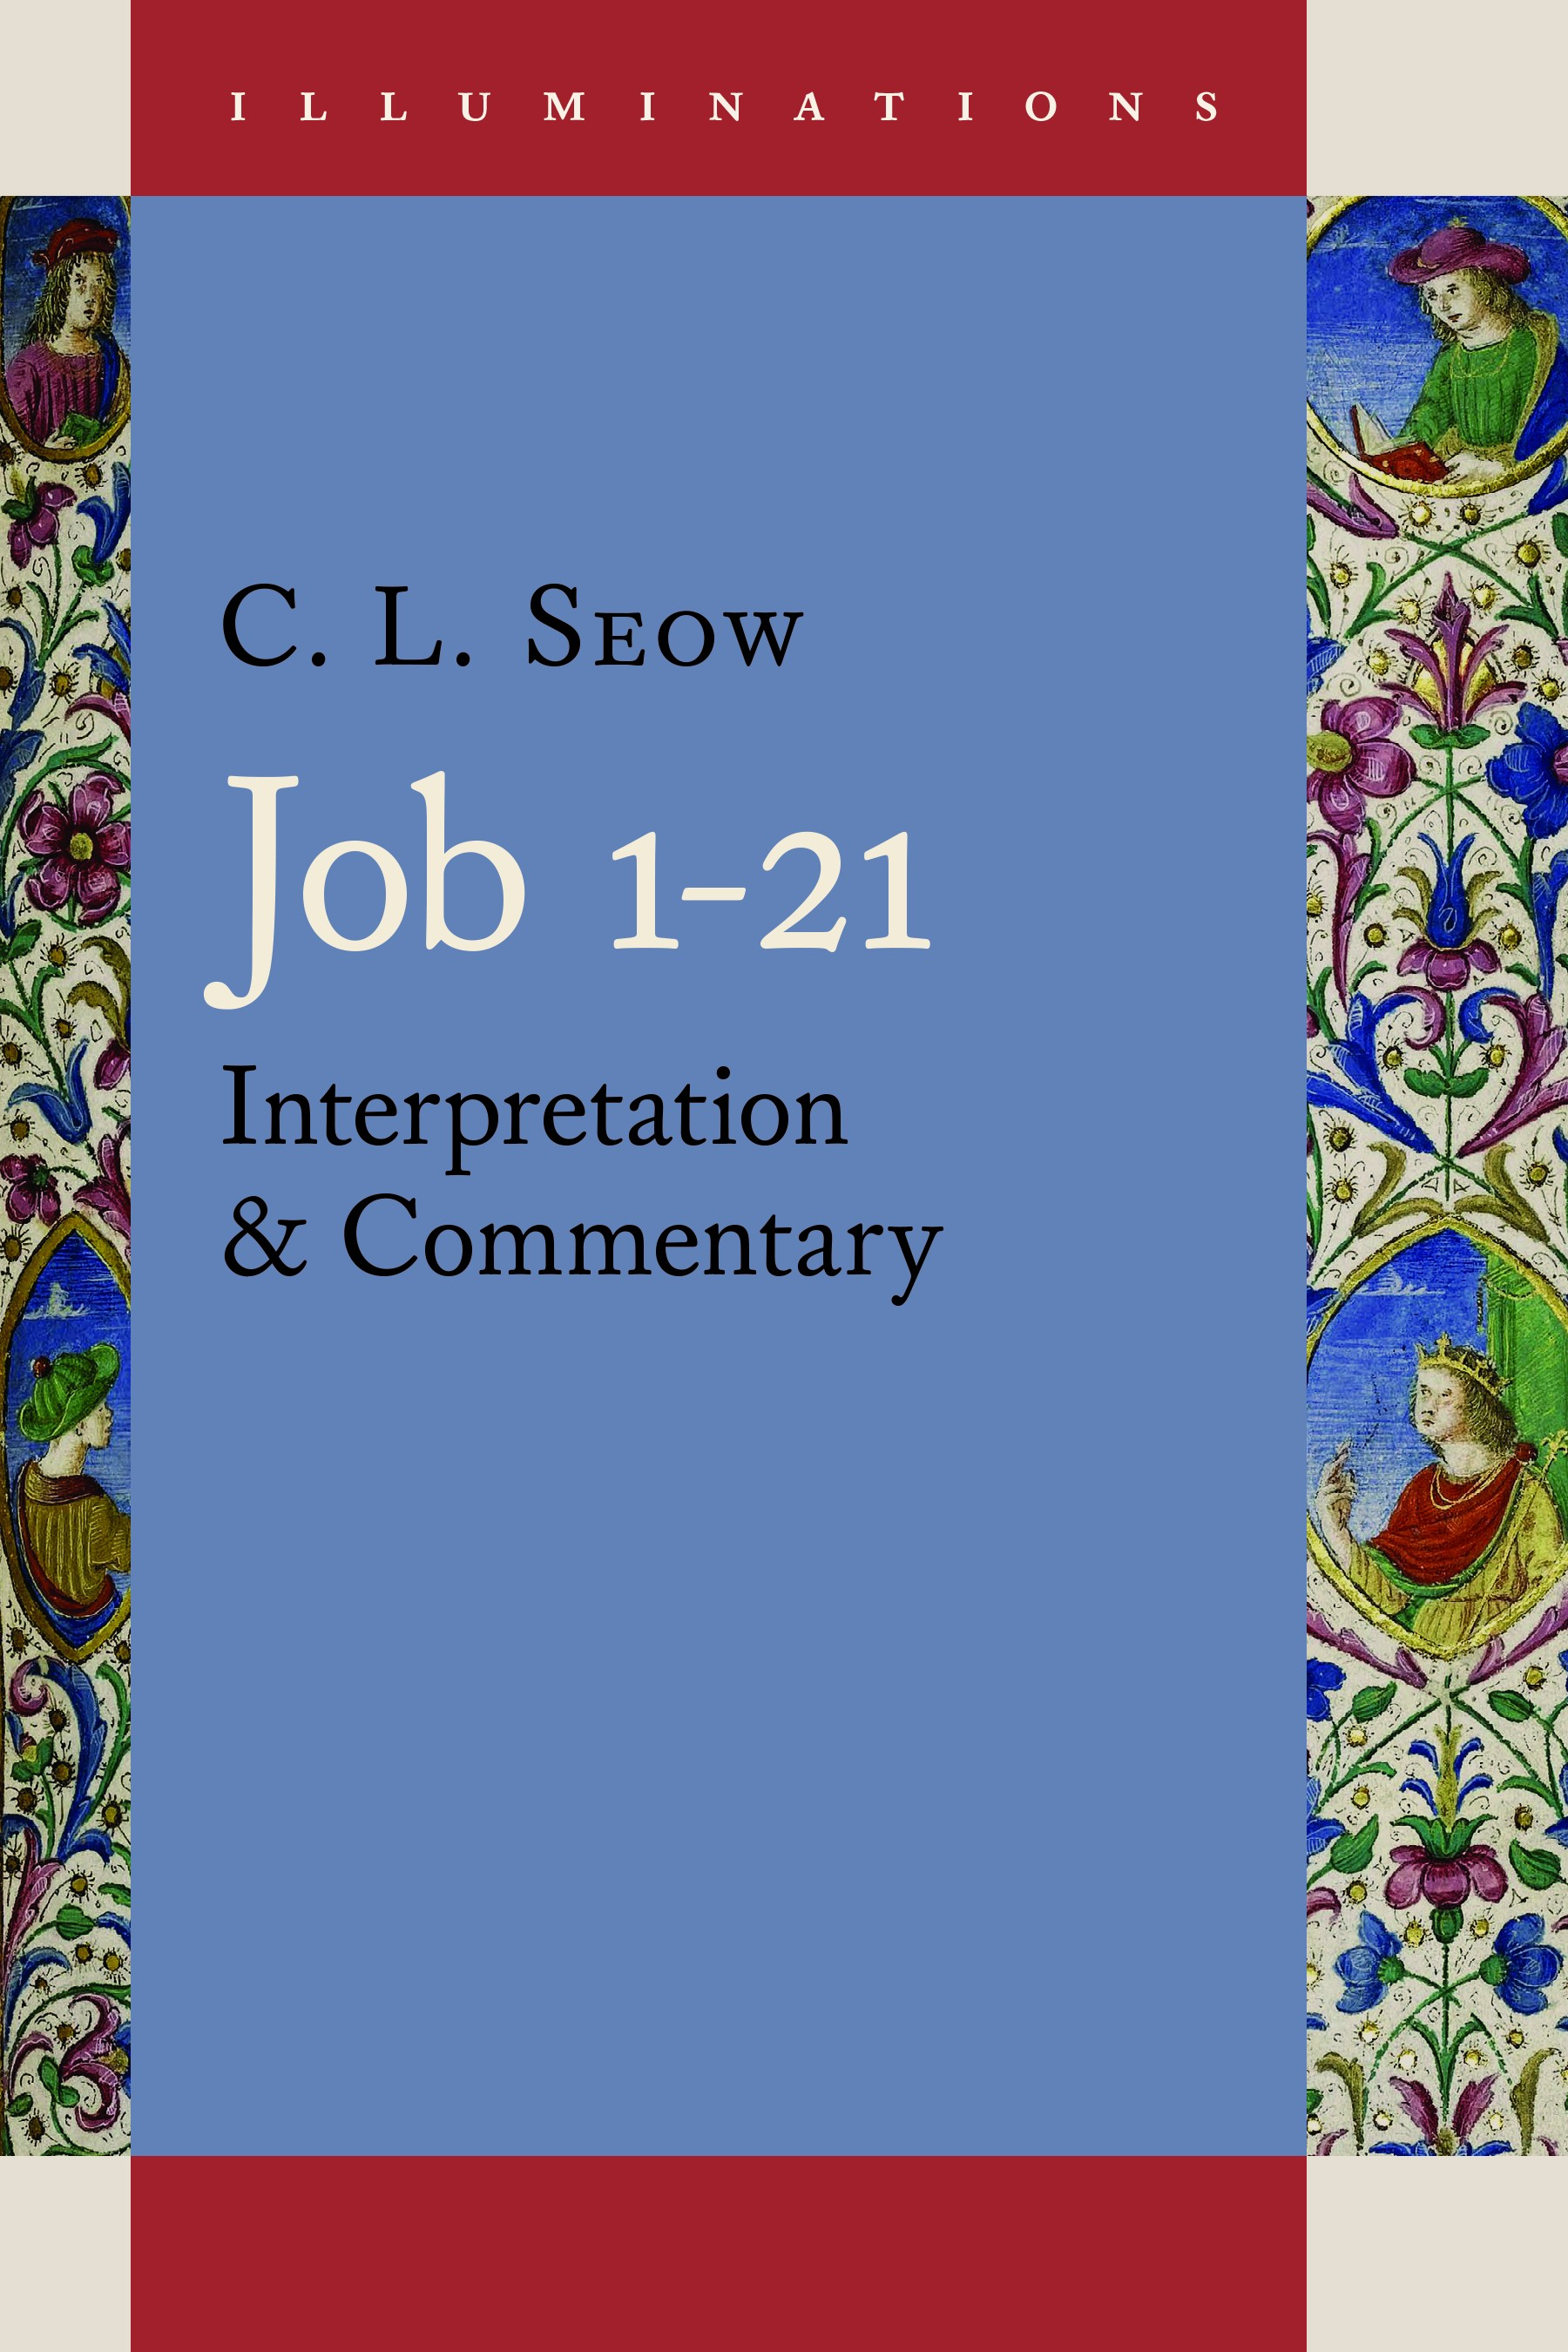 Job 1–21, the inaugural volume in the ILLUMINATIONS commentary series.